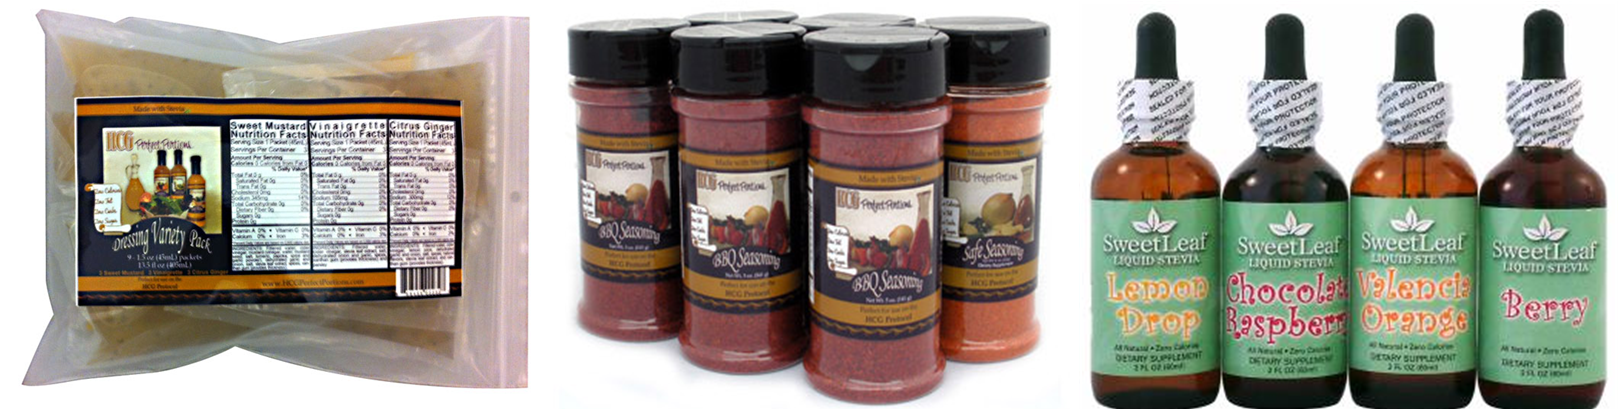 Thank You | Wholesale Diet Products Samples